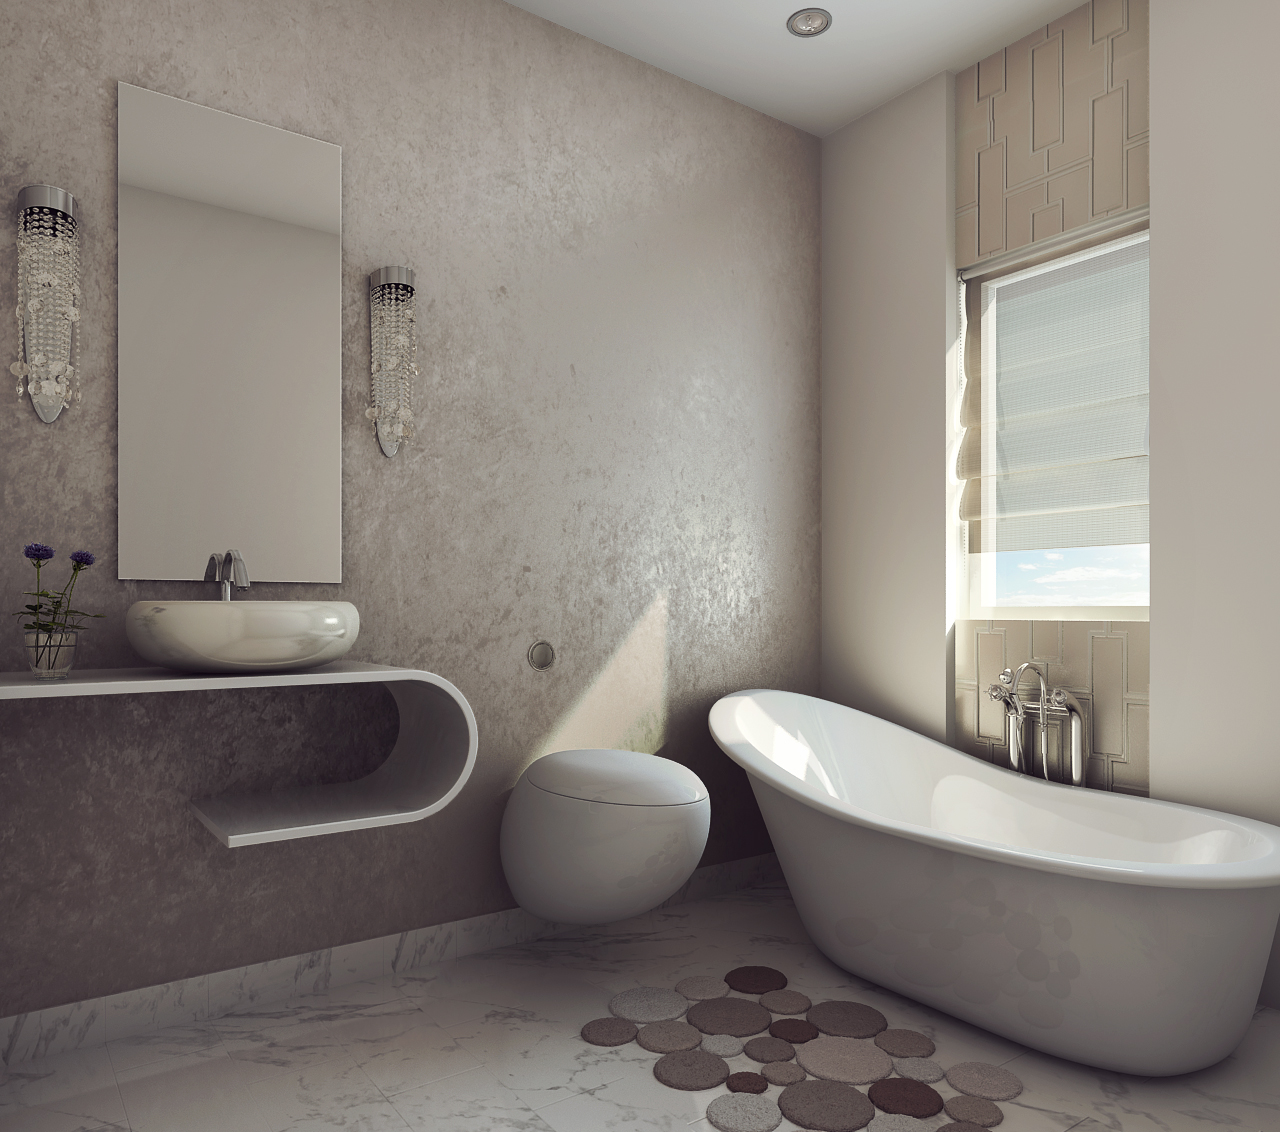 Modern earthy design bath room free 3d model max for Model bathrooms photos